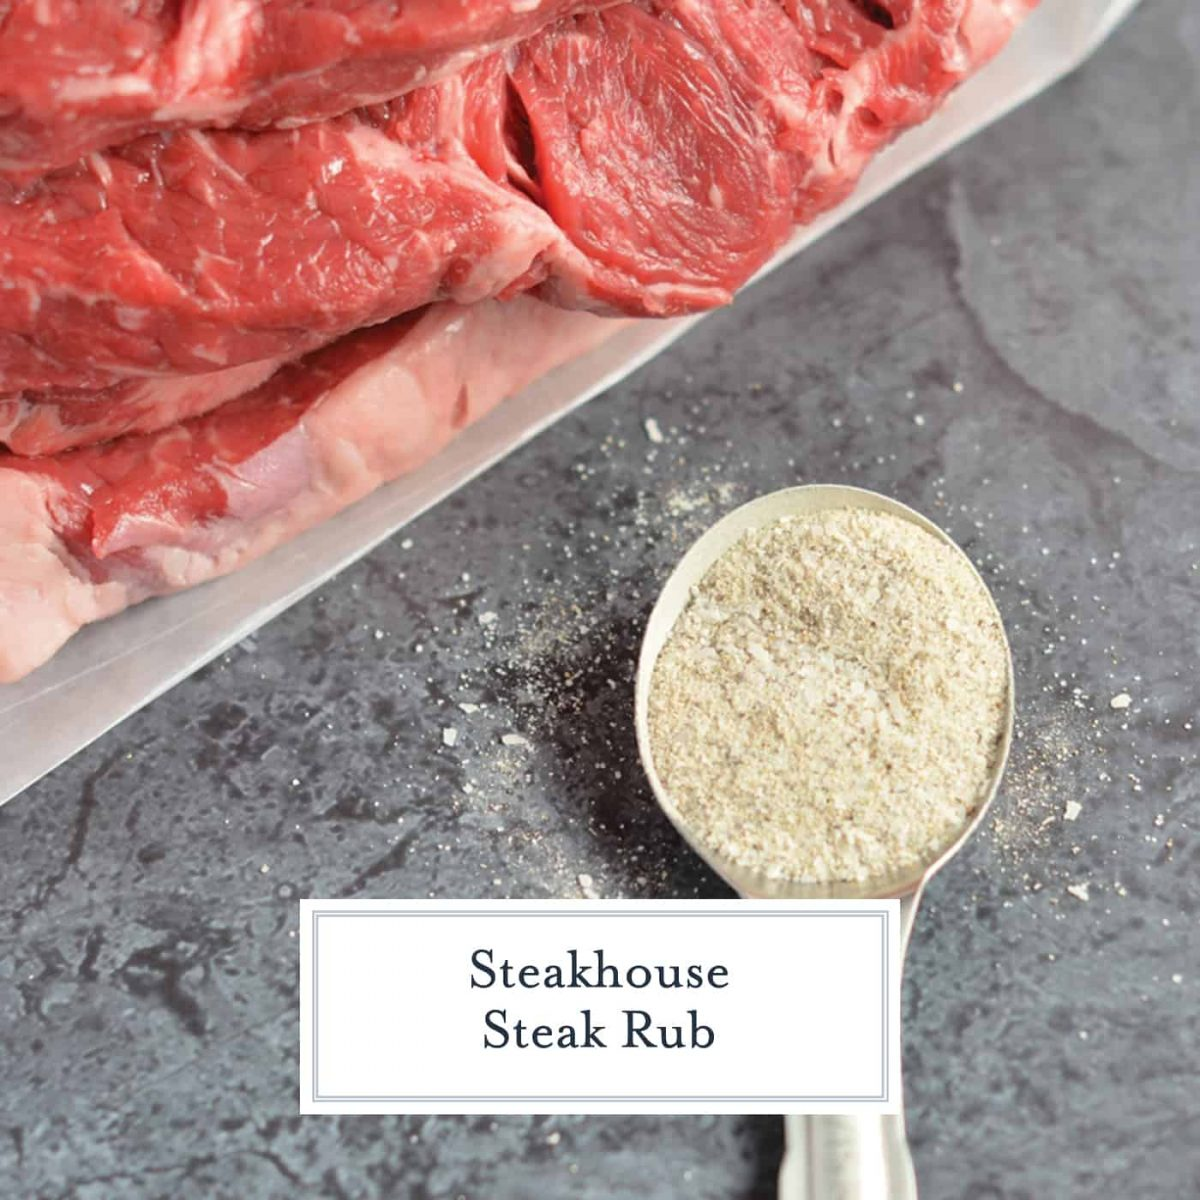 Steakhouse Steak Rub is a secret recipe that I received from a friend at a 5-star steakhouse. You won't beleive how easy it is to make and how delicious your steak will taste! #steakrub #beefseasoning www.savoryexperiments.com